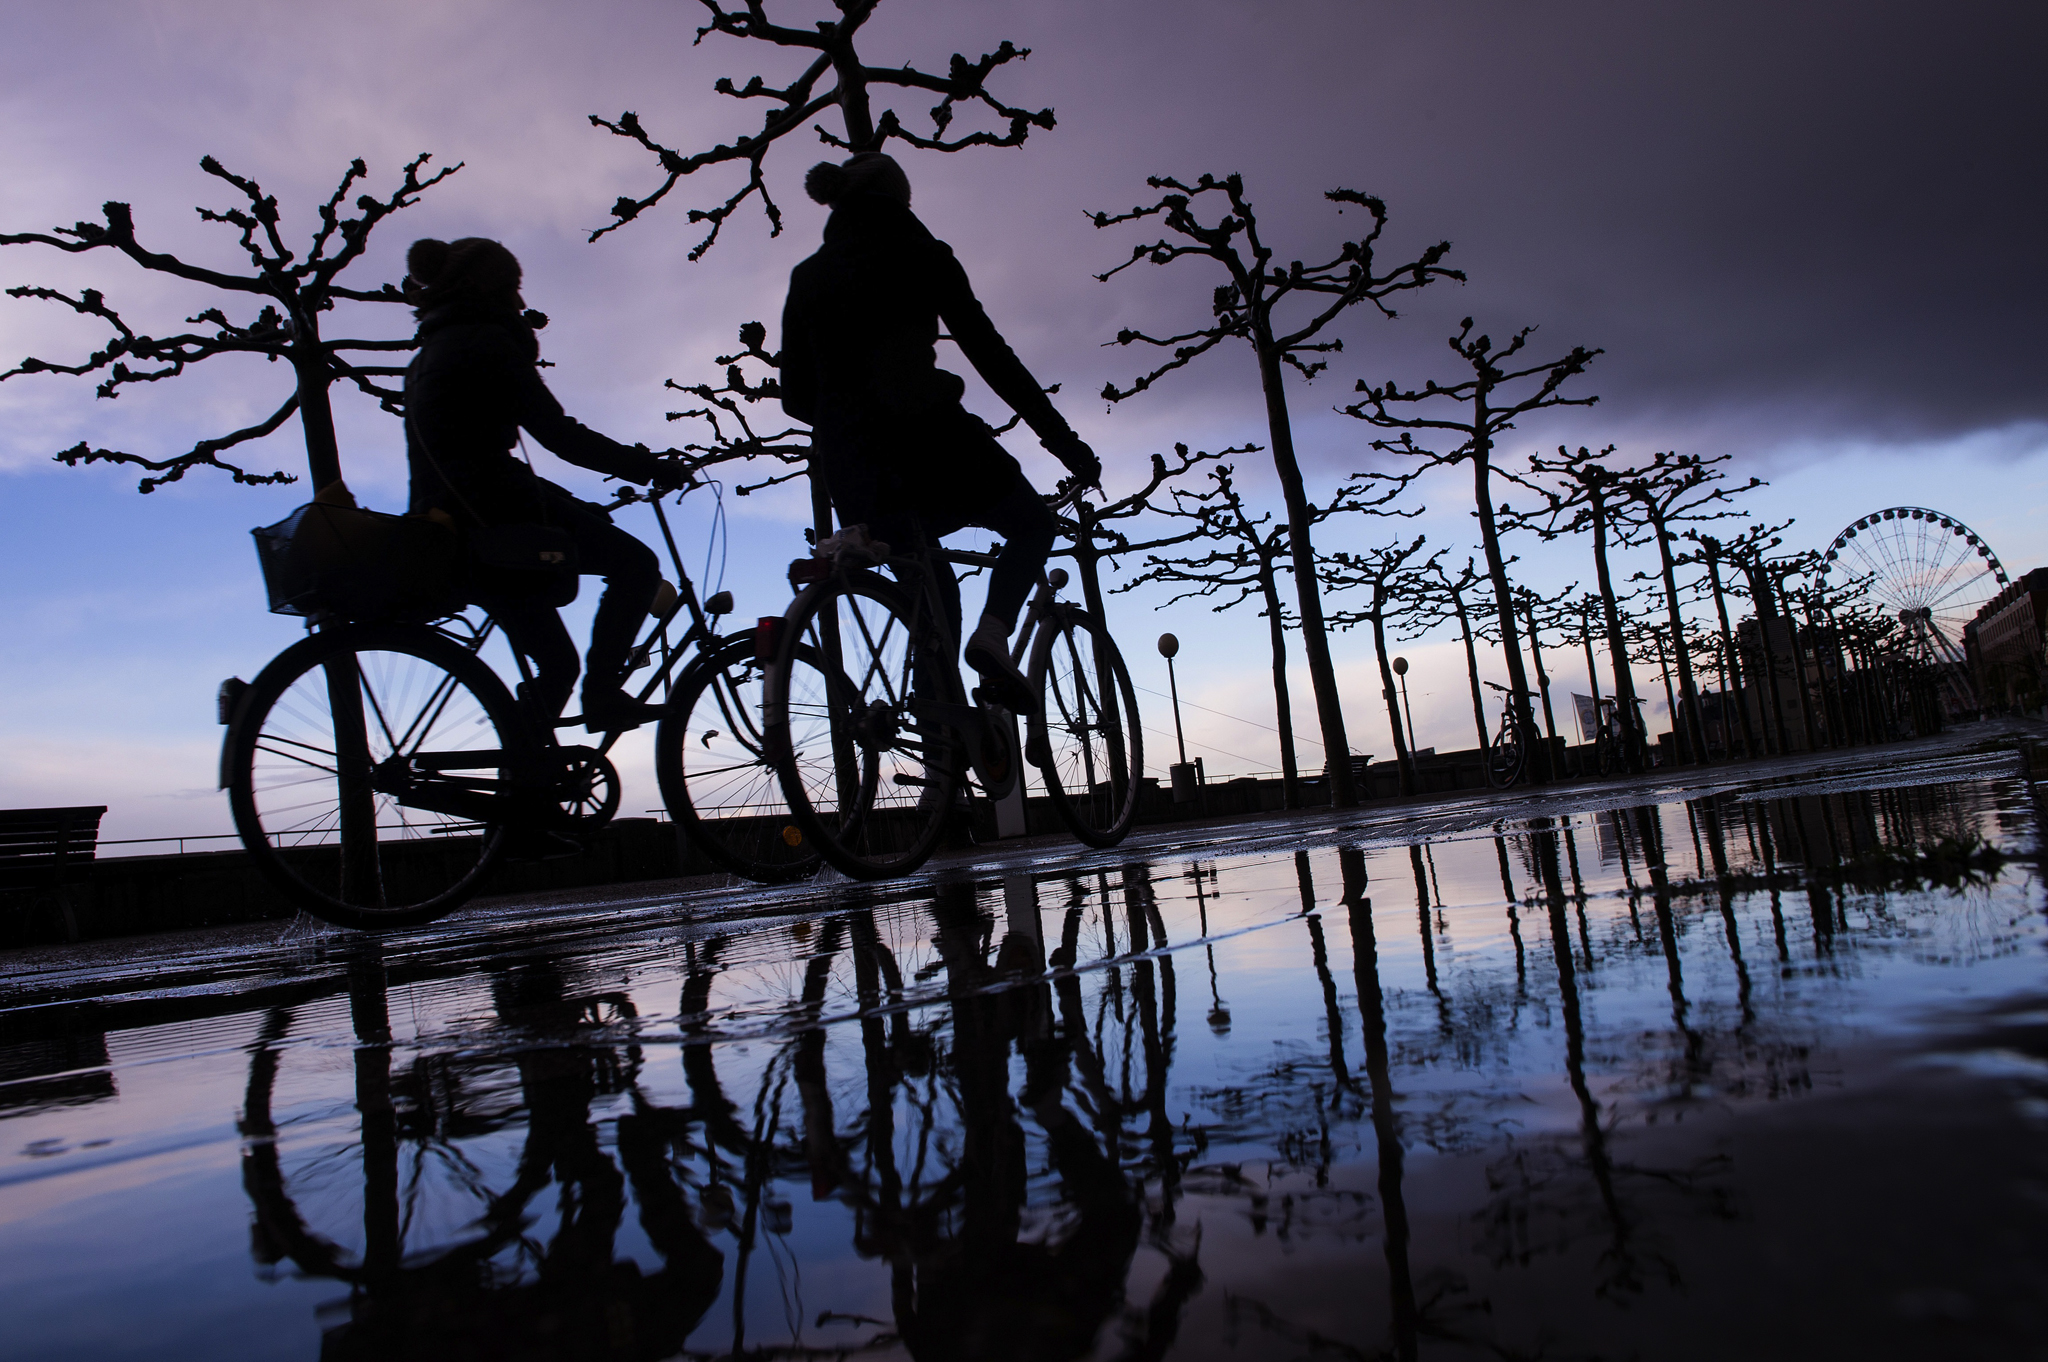 Two cyclists are reflected in a puddle shortly after a storm on the banks of the river Rhine in Duesseldorf, Germany.